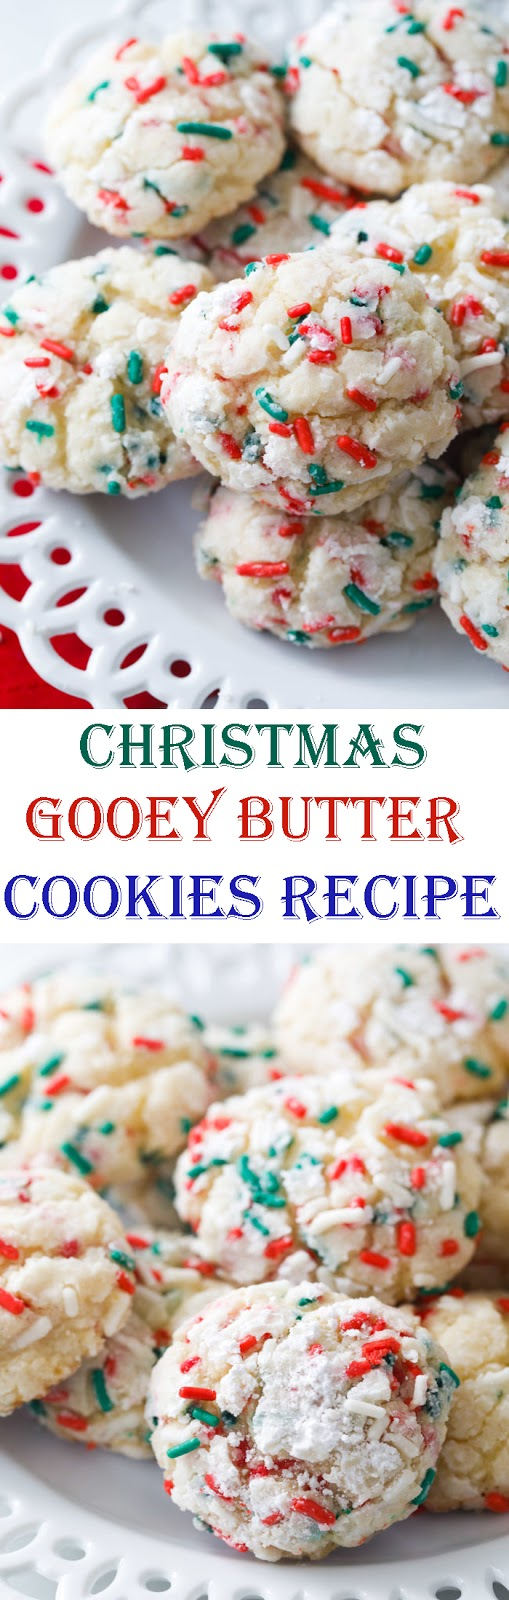 Christmas Gooey Butter Cookies Recipe Easy Christmas Cookies